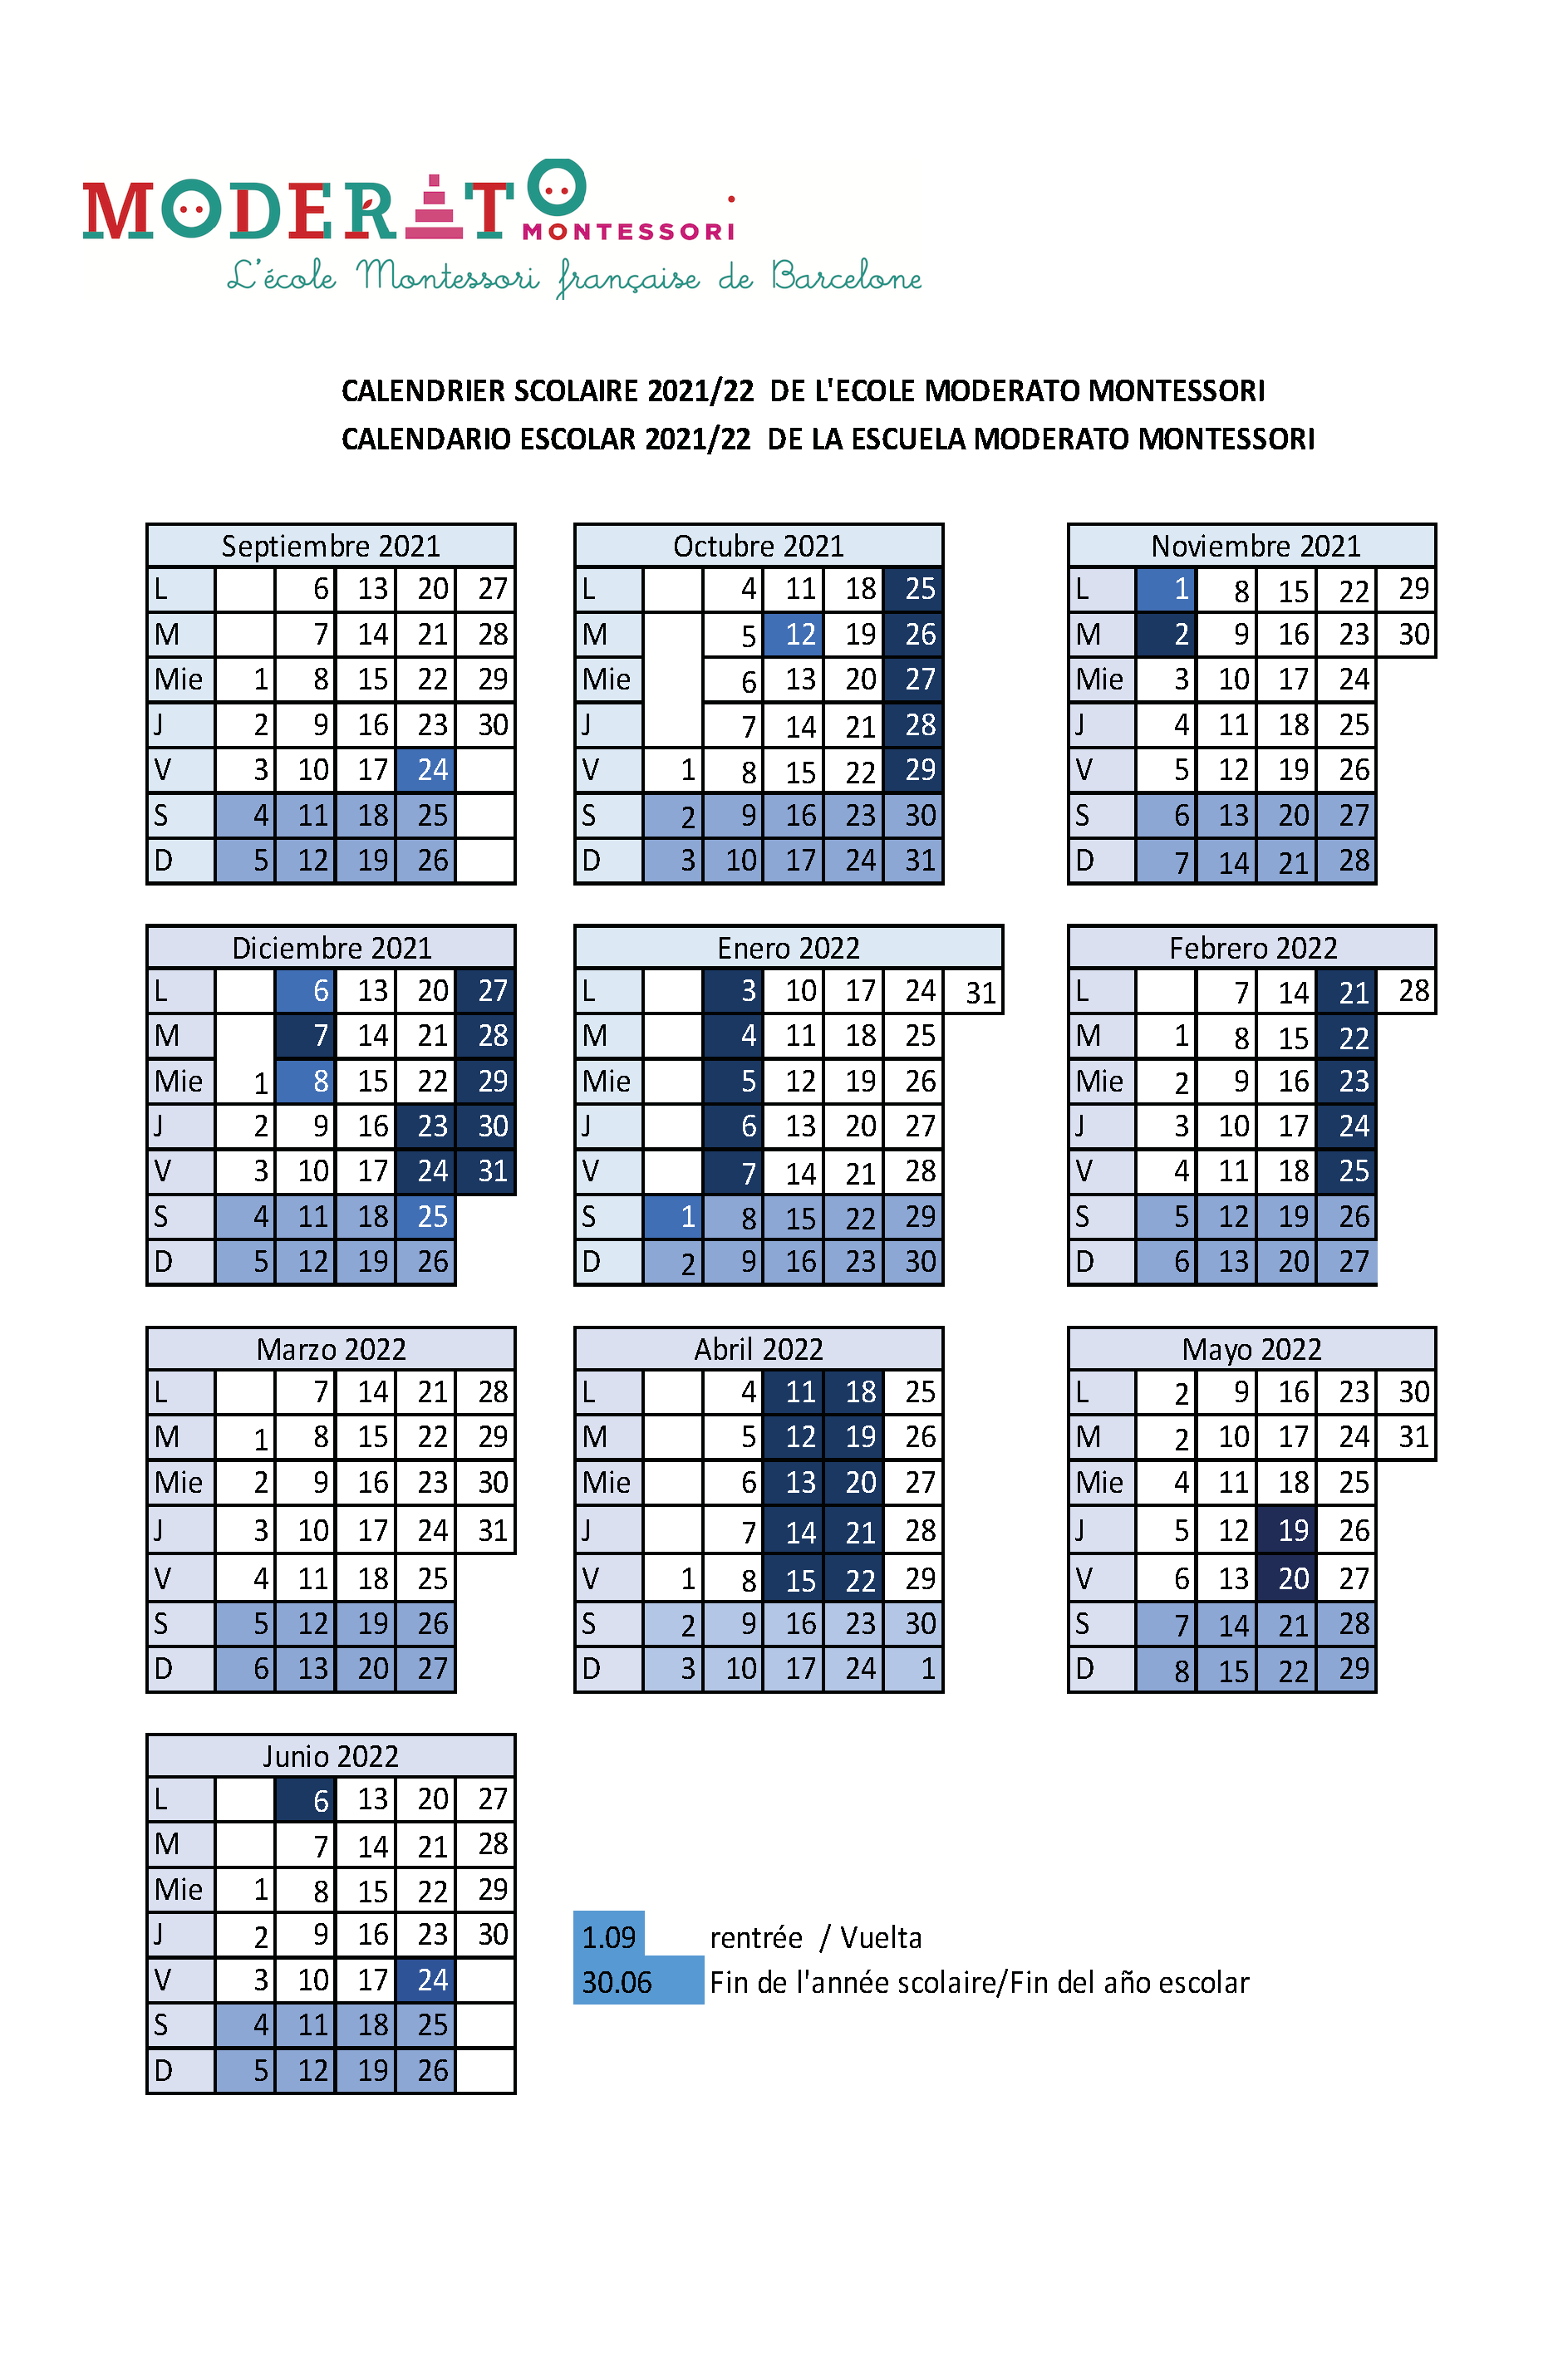 Calendrier Scolaires 2021-2022 Barcelona